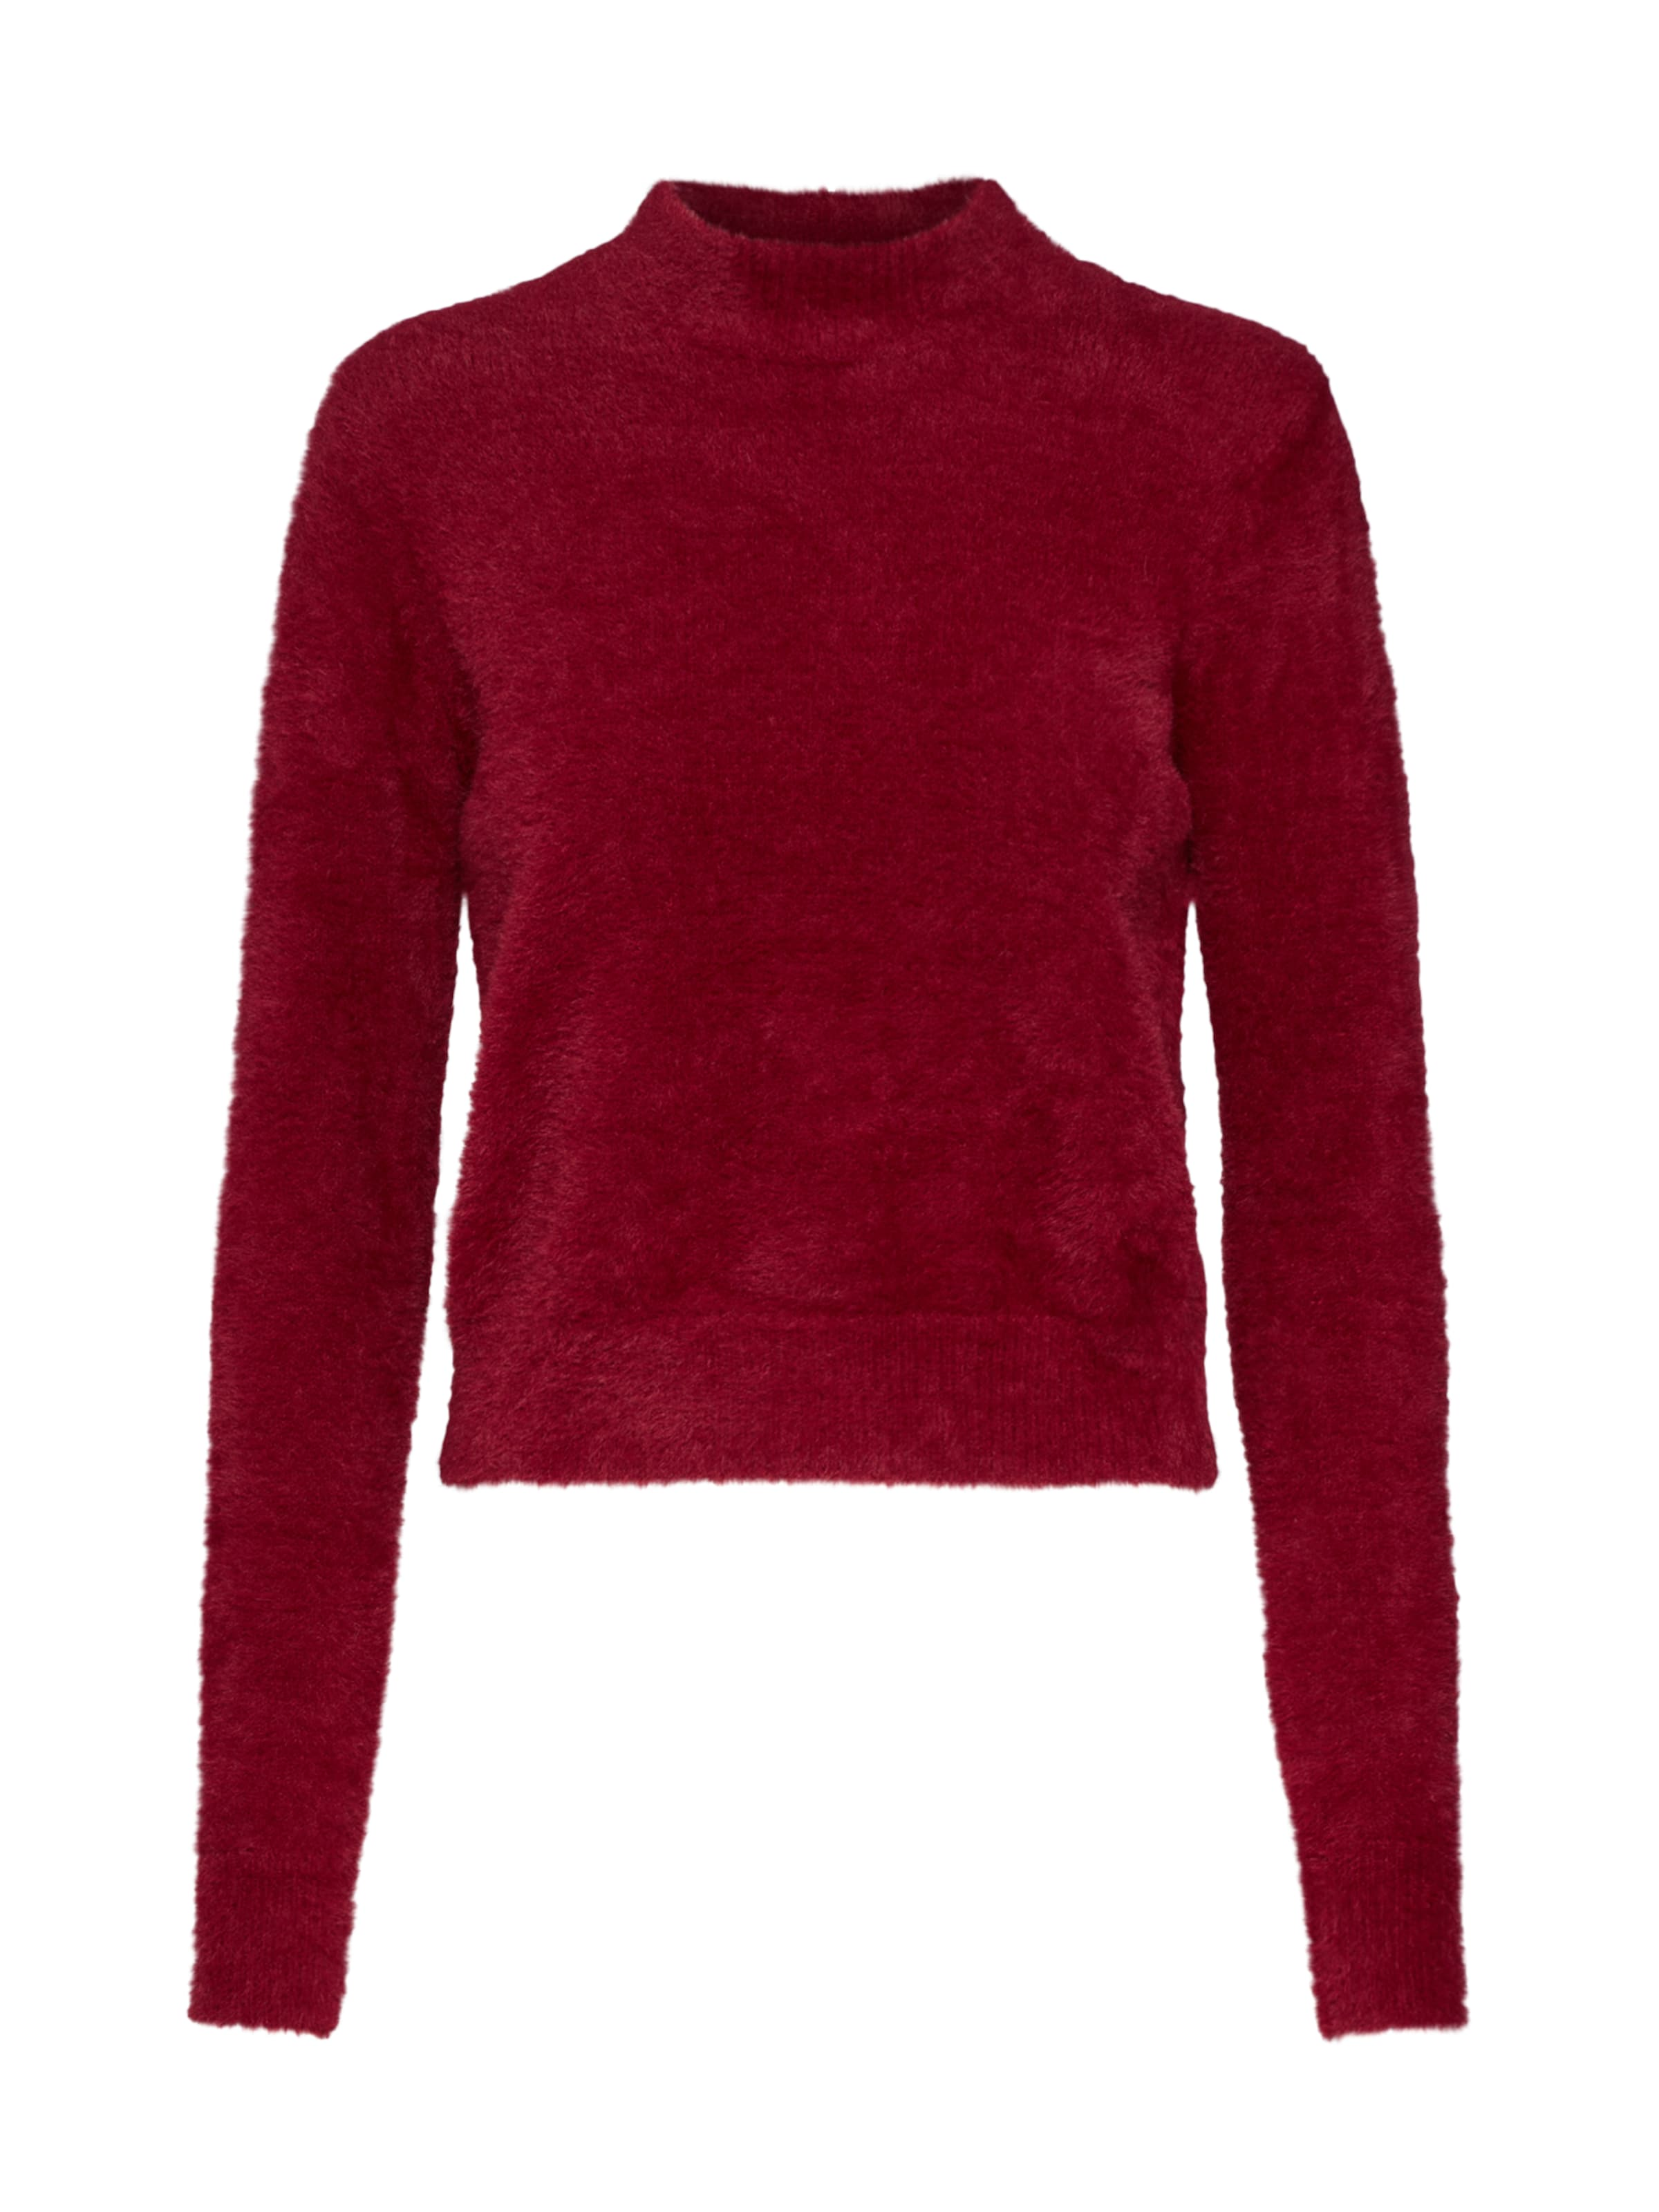 Rouge 'irene' Guess over En Pull 54ALRj